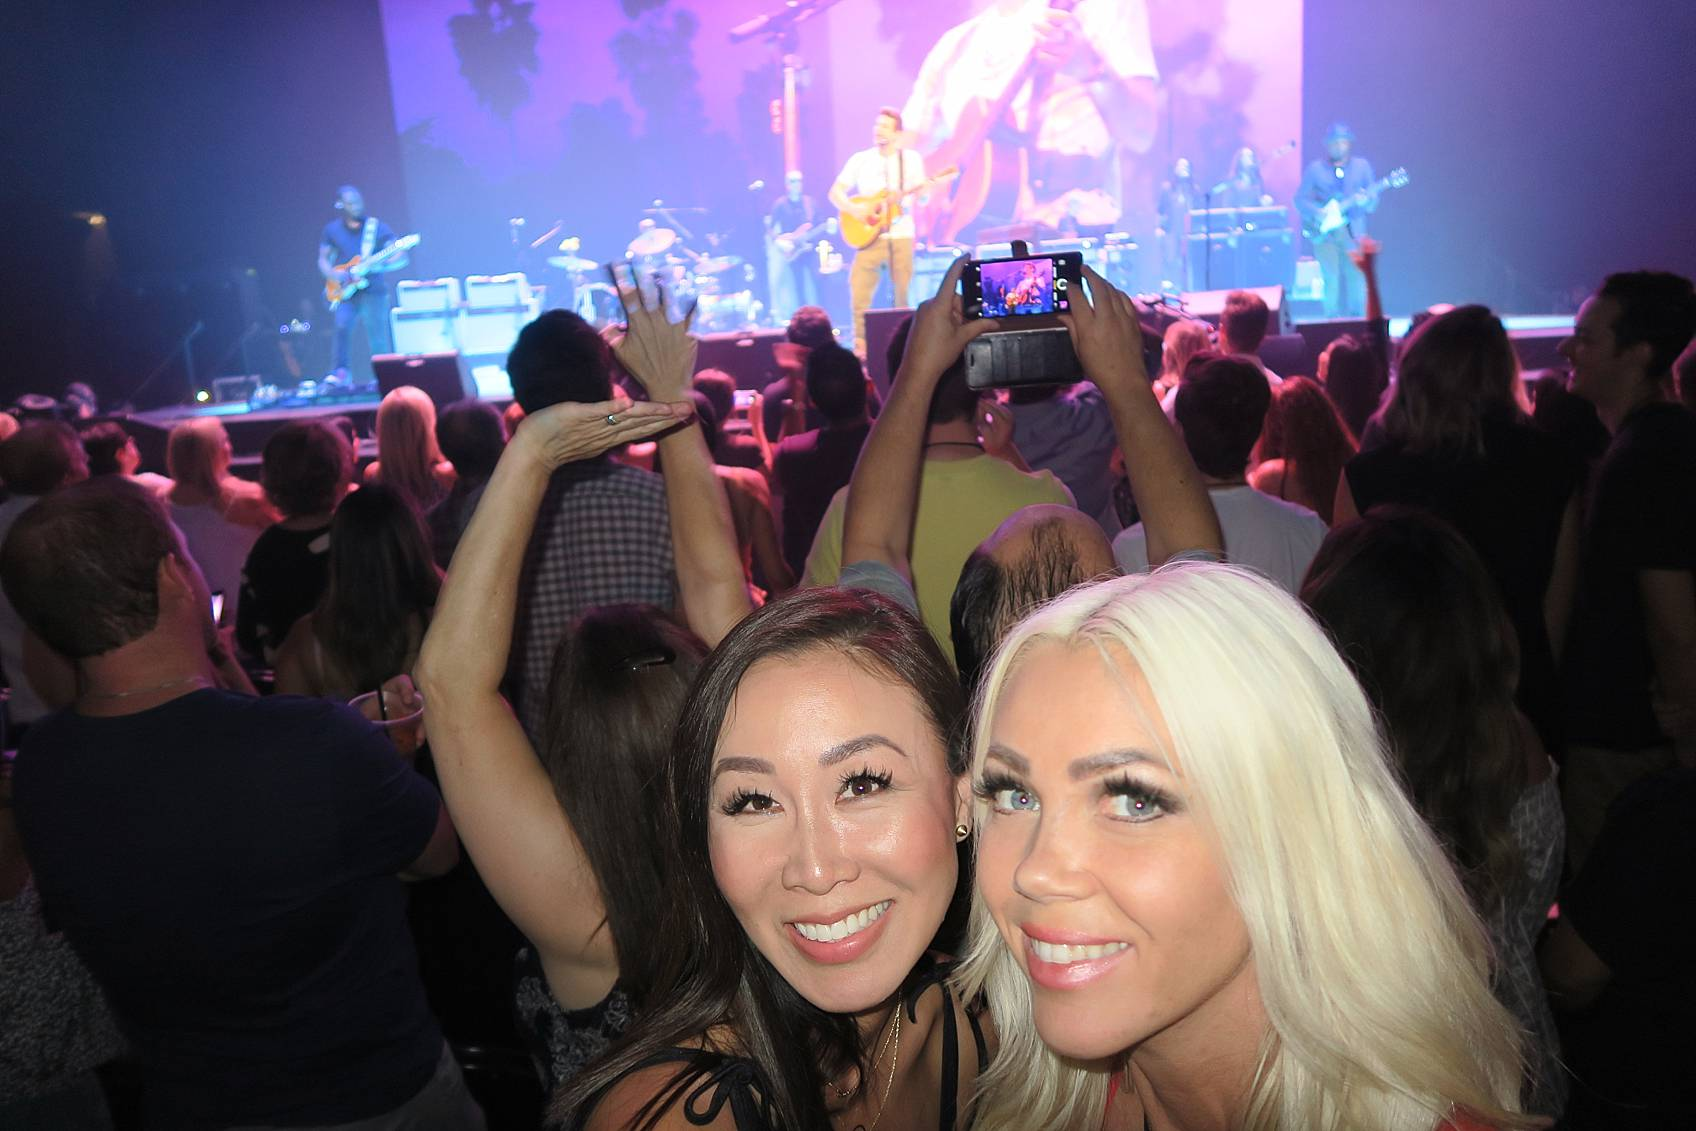 Selfie of Diana Elizabeth blogger and friend with John Mayer performing in Phoenix on stage for his The Search for Everything Tour in the background